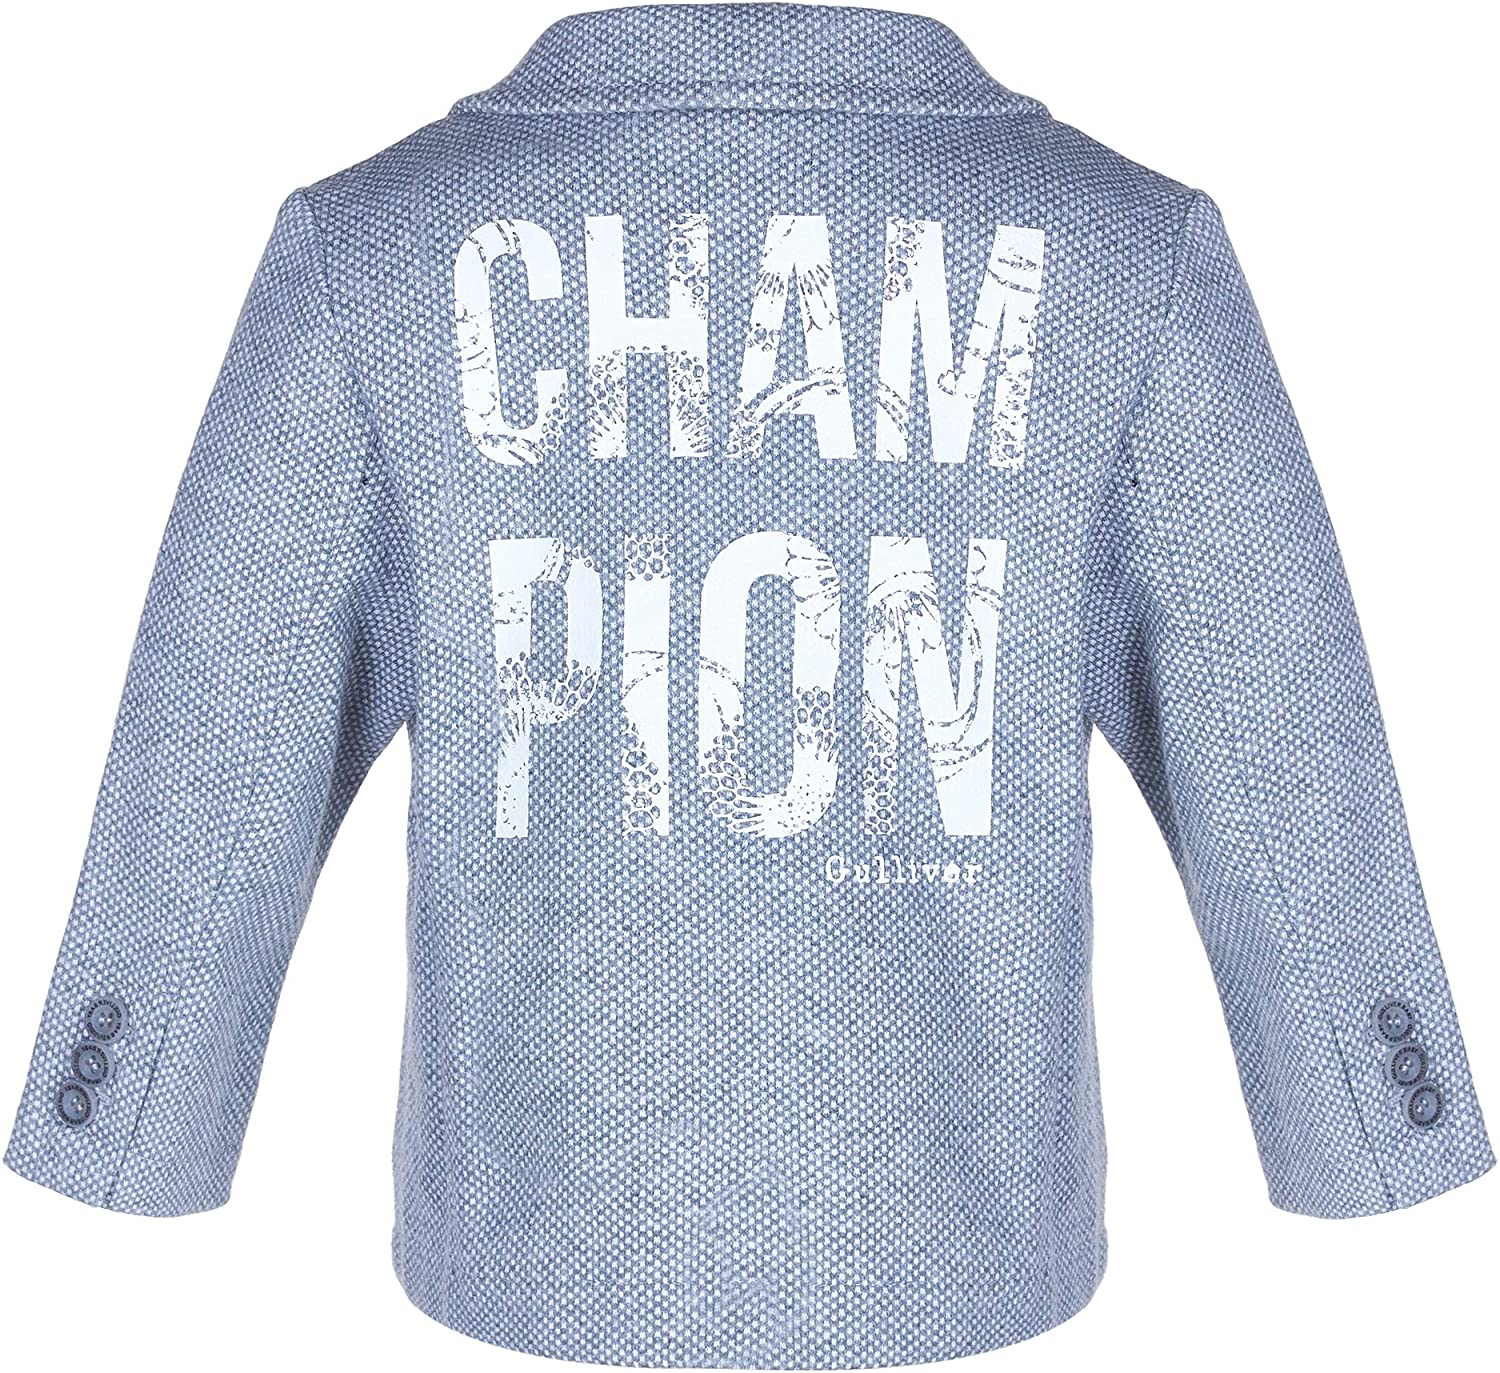 Pockets Cotton Regular Fit V-Neck Collar Letter Print Casual Classic Buttons Long Sleeve Colour Grey GULLIVER Baby Boys Blazer//Jacket for 9-24 Months